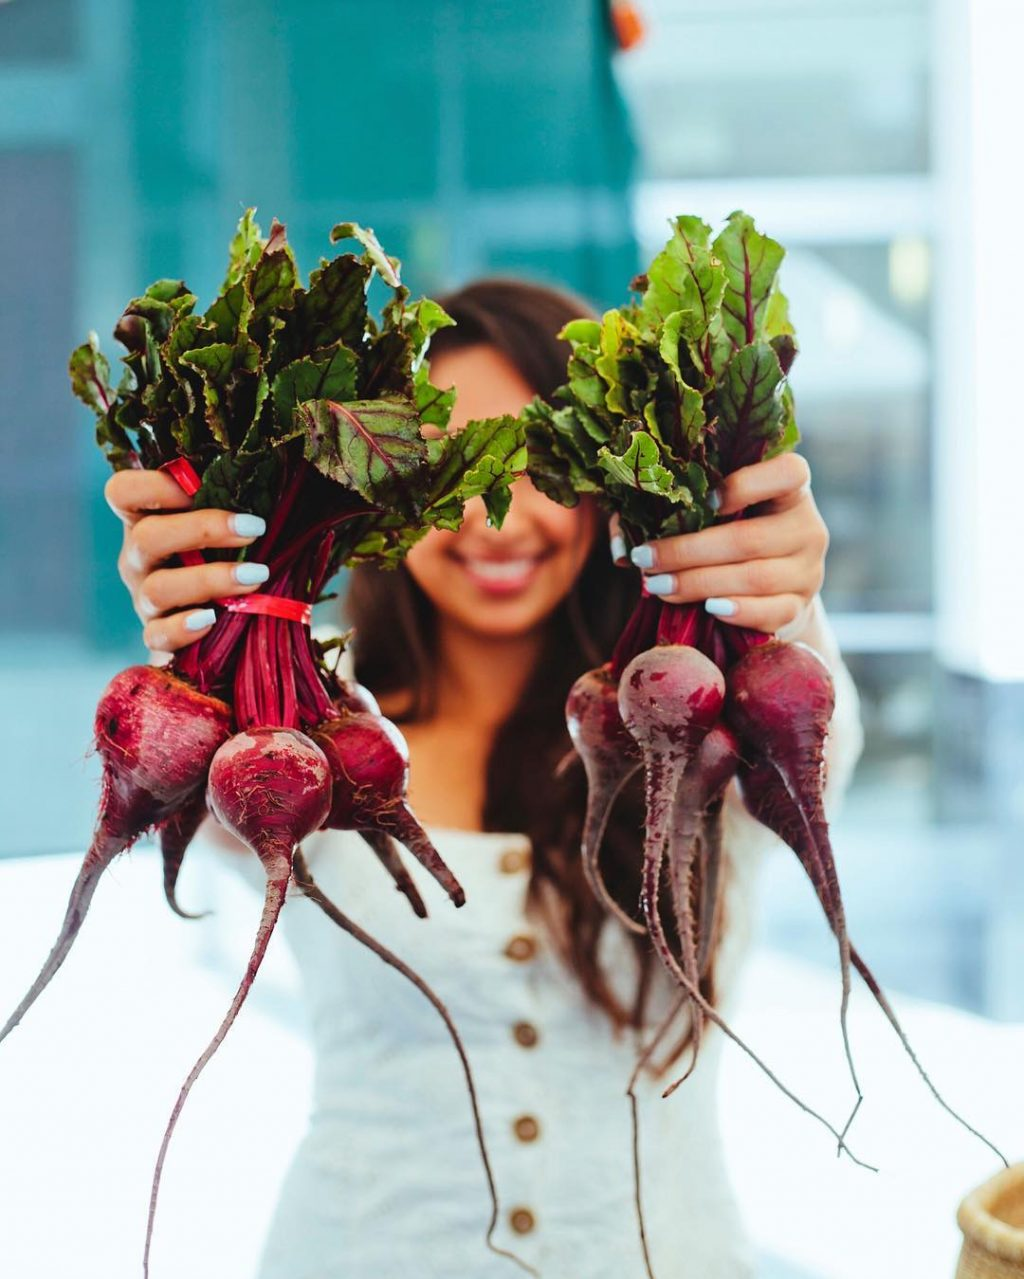 sahara rose beetroot vegetables